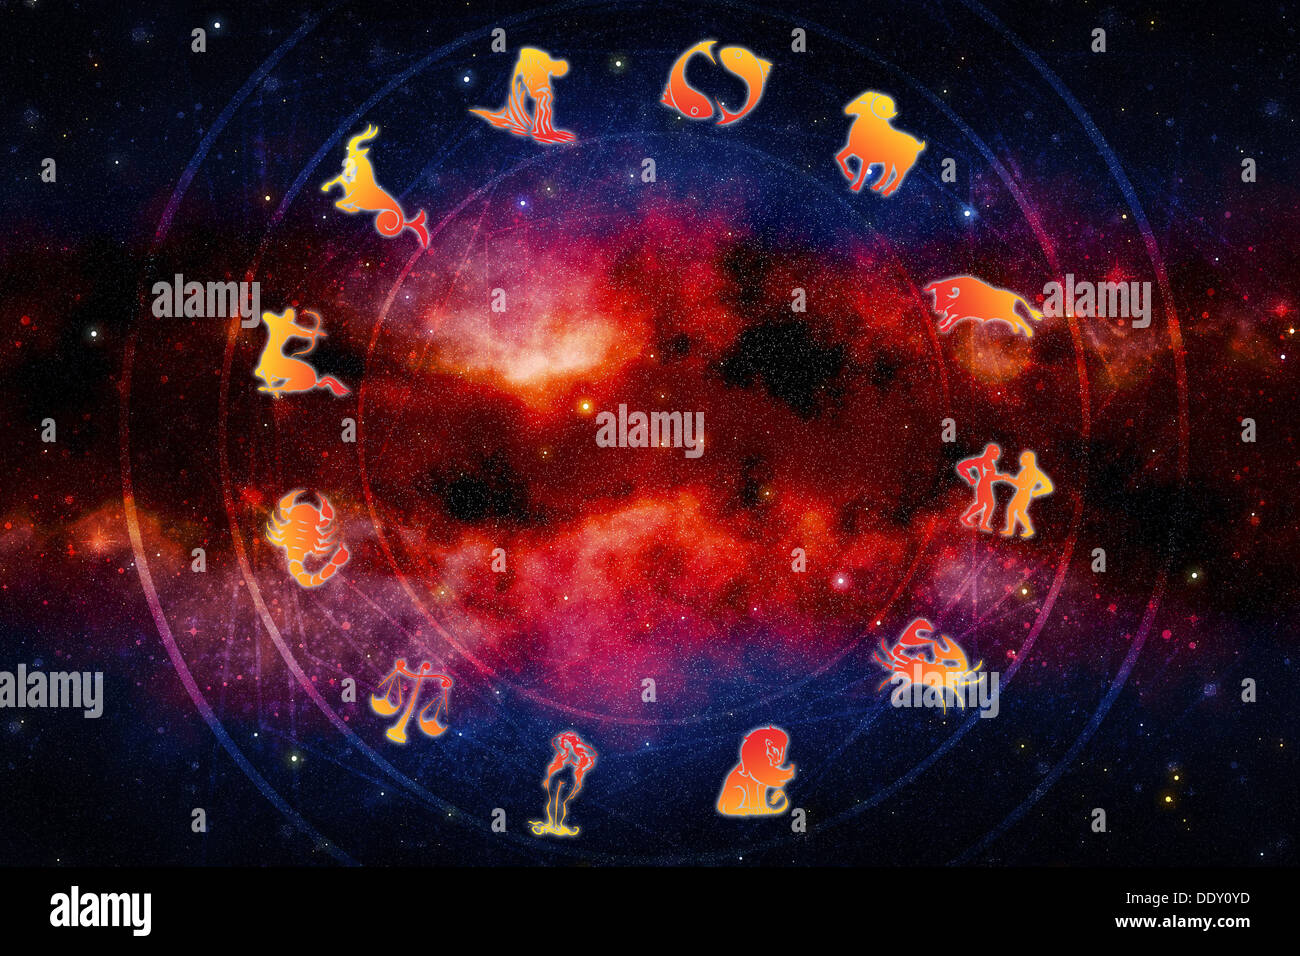 all zodiac signs, astrology and horoscope concept - Stock Image